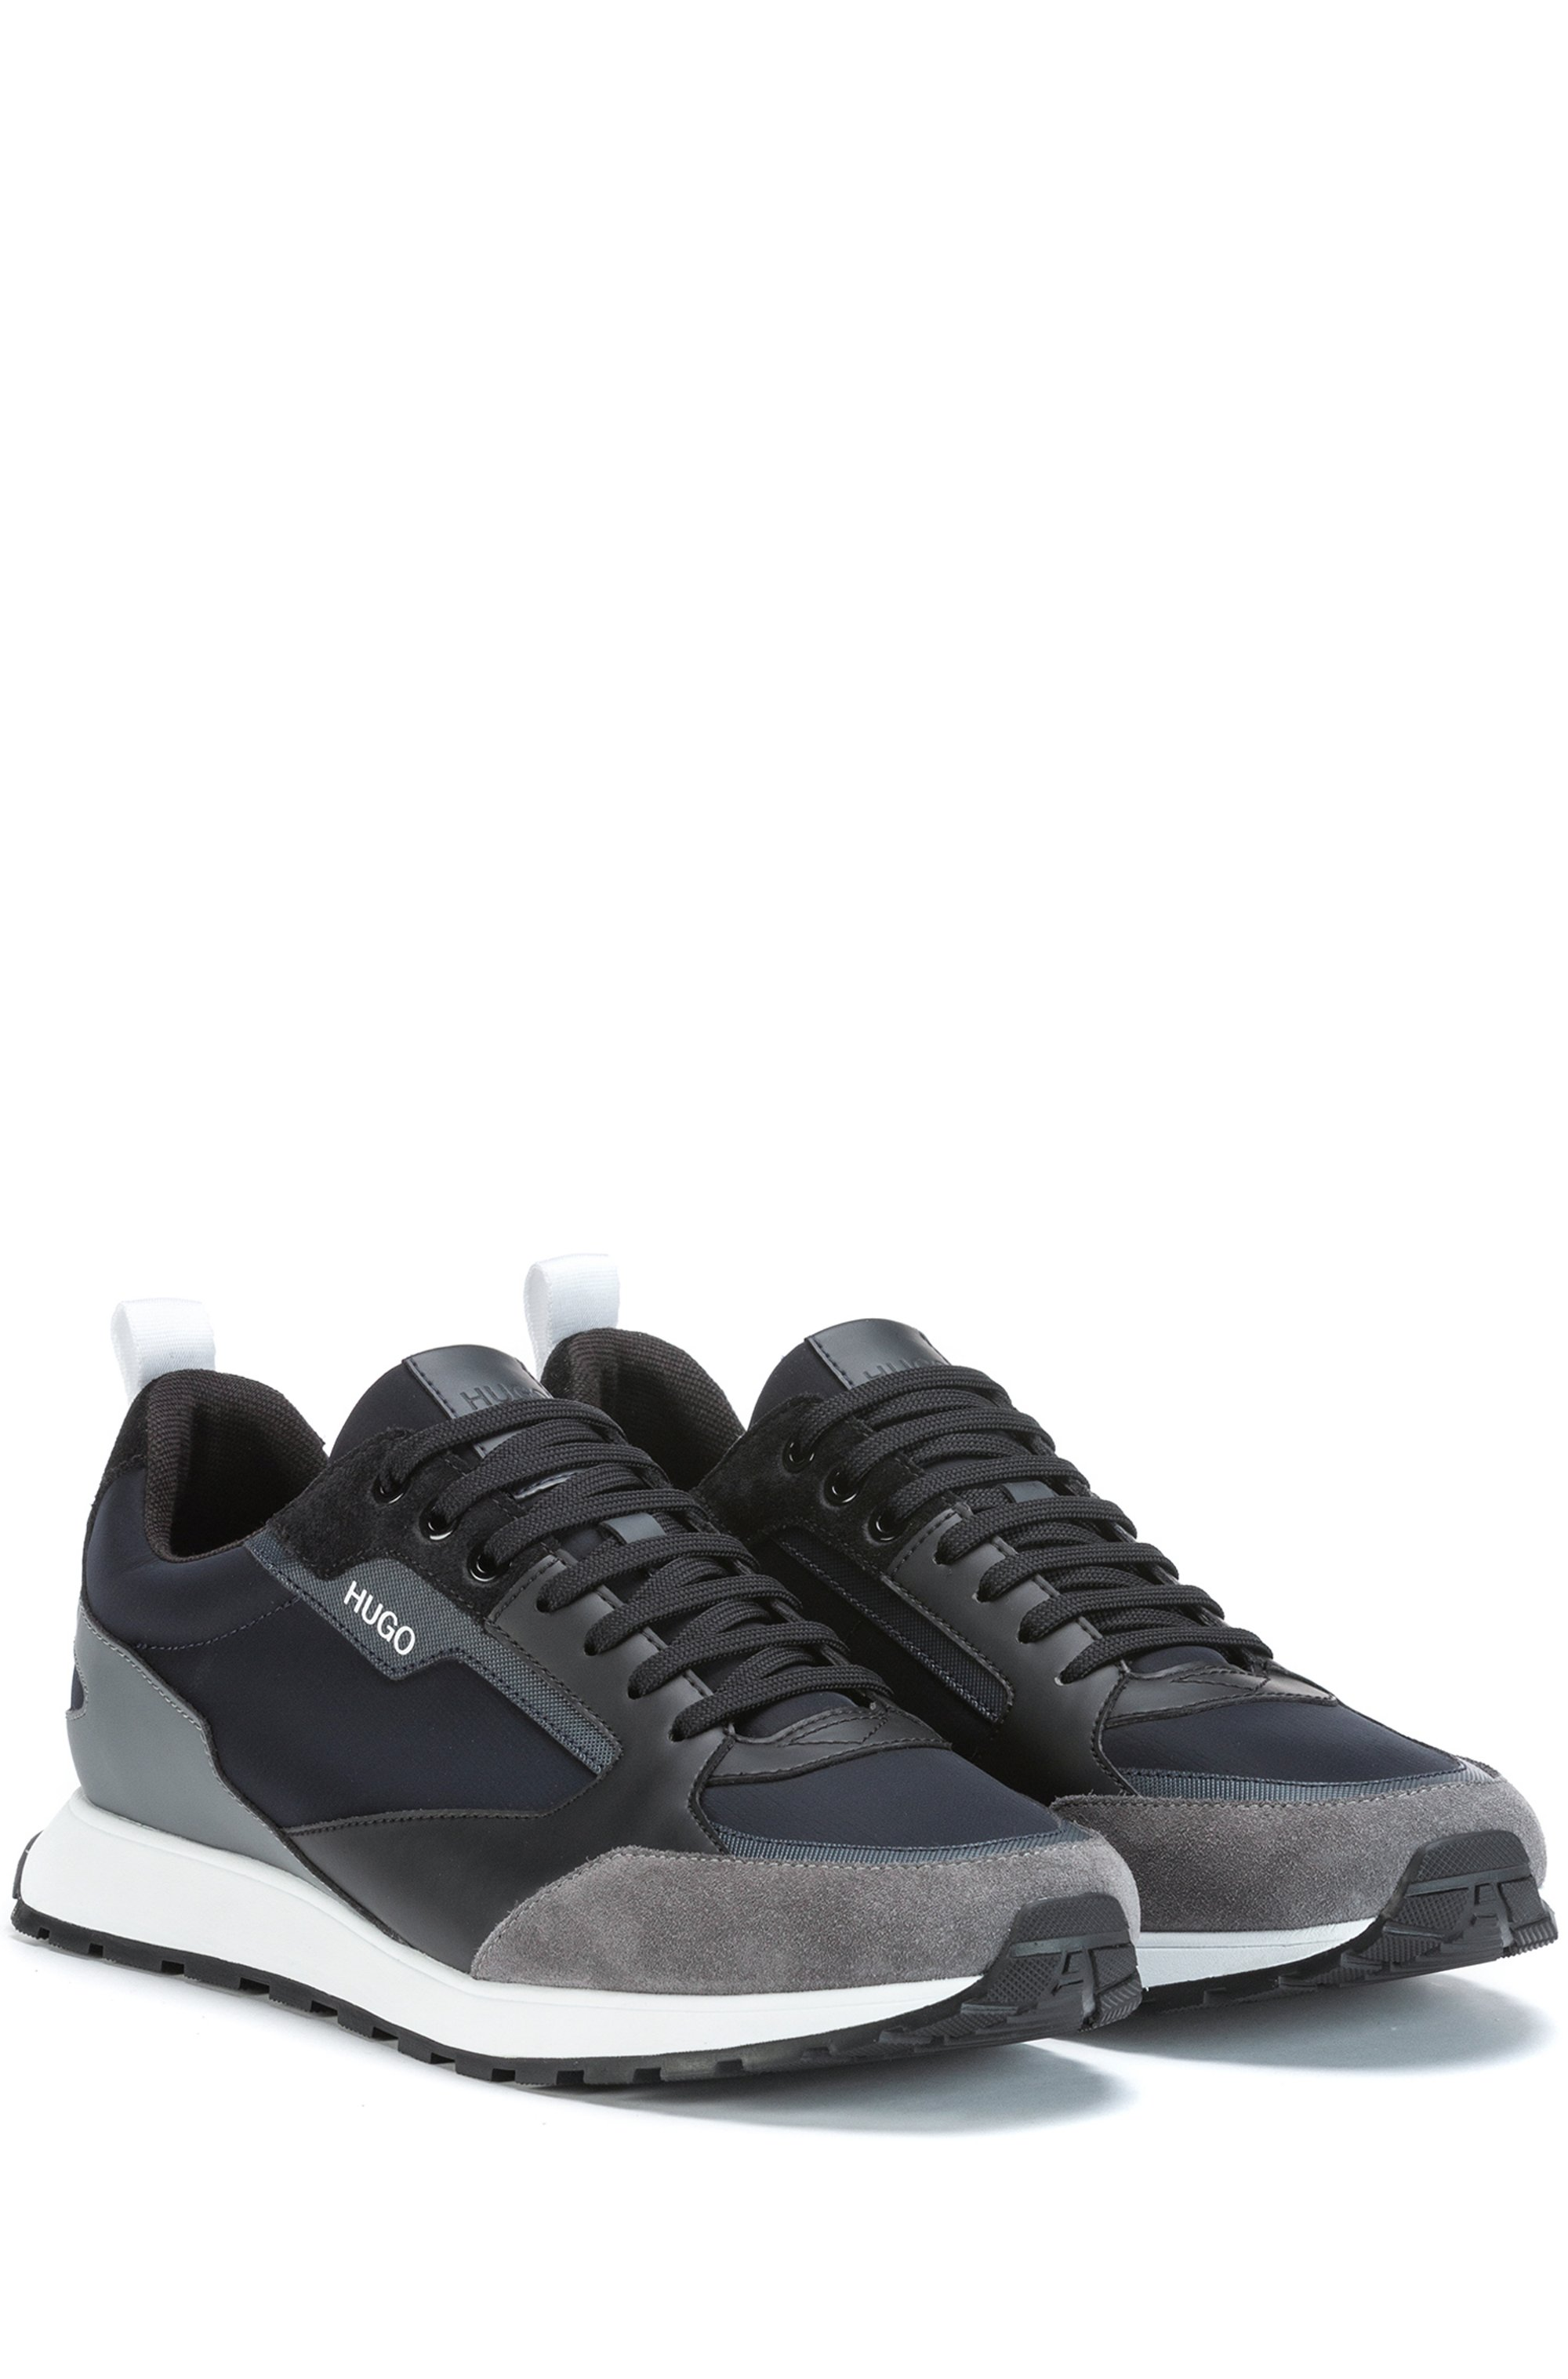 Retro-inspired trainers with suede and mesh details